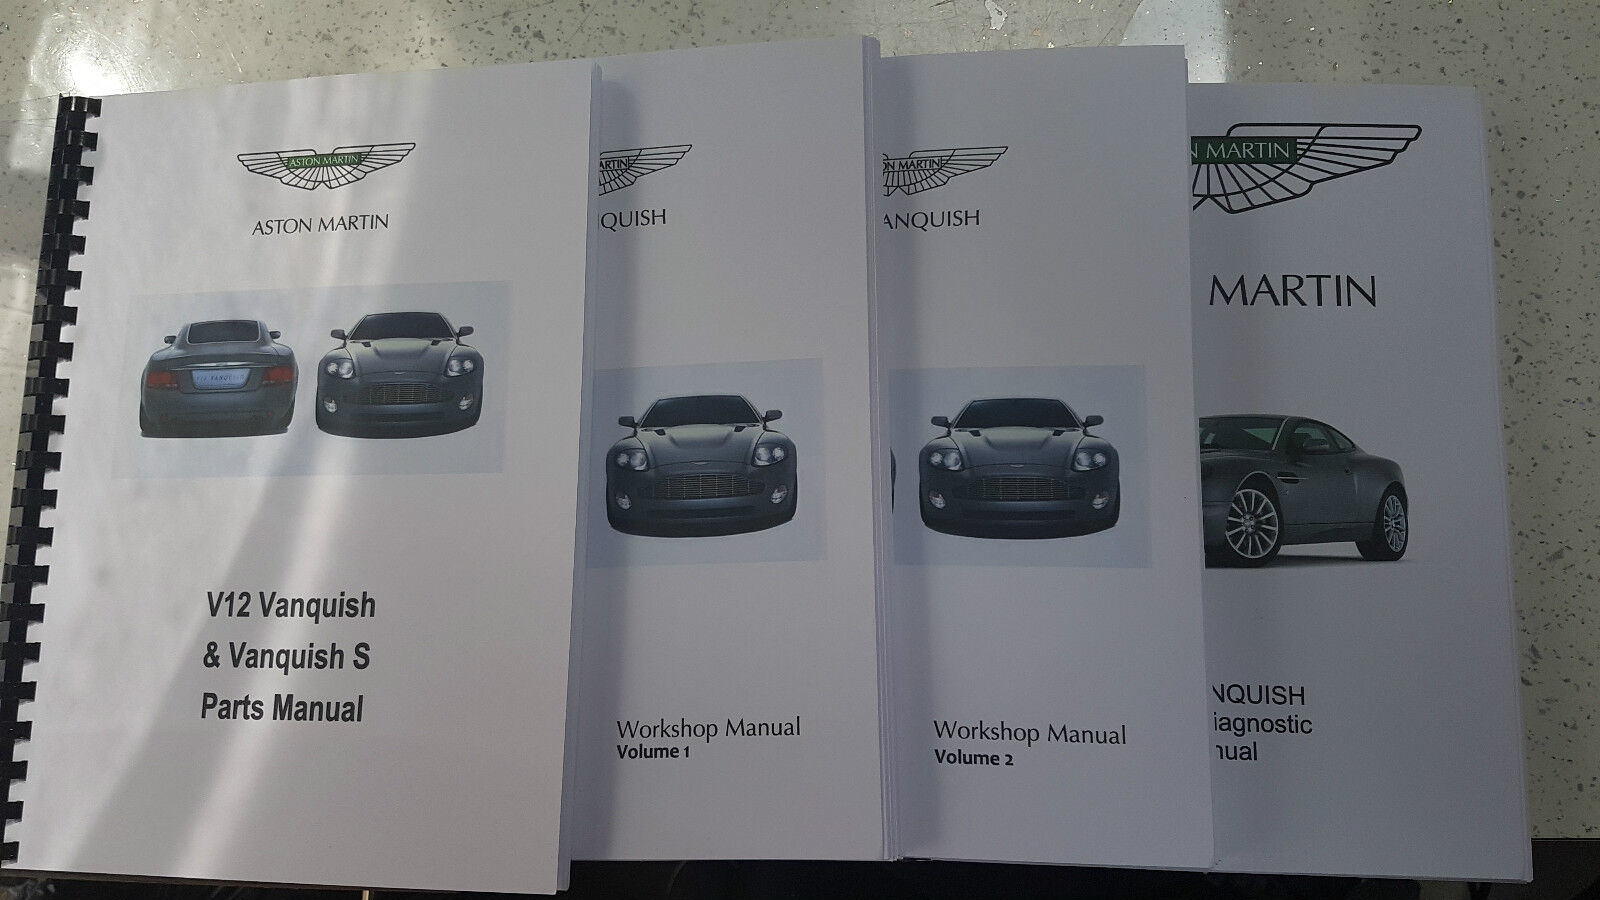 aston martin v12 vanquish 01-07 parts workshop & obd manual set